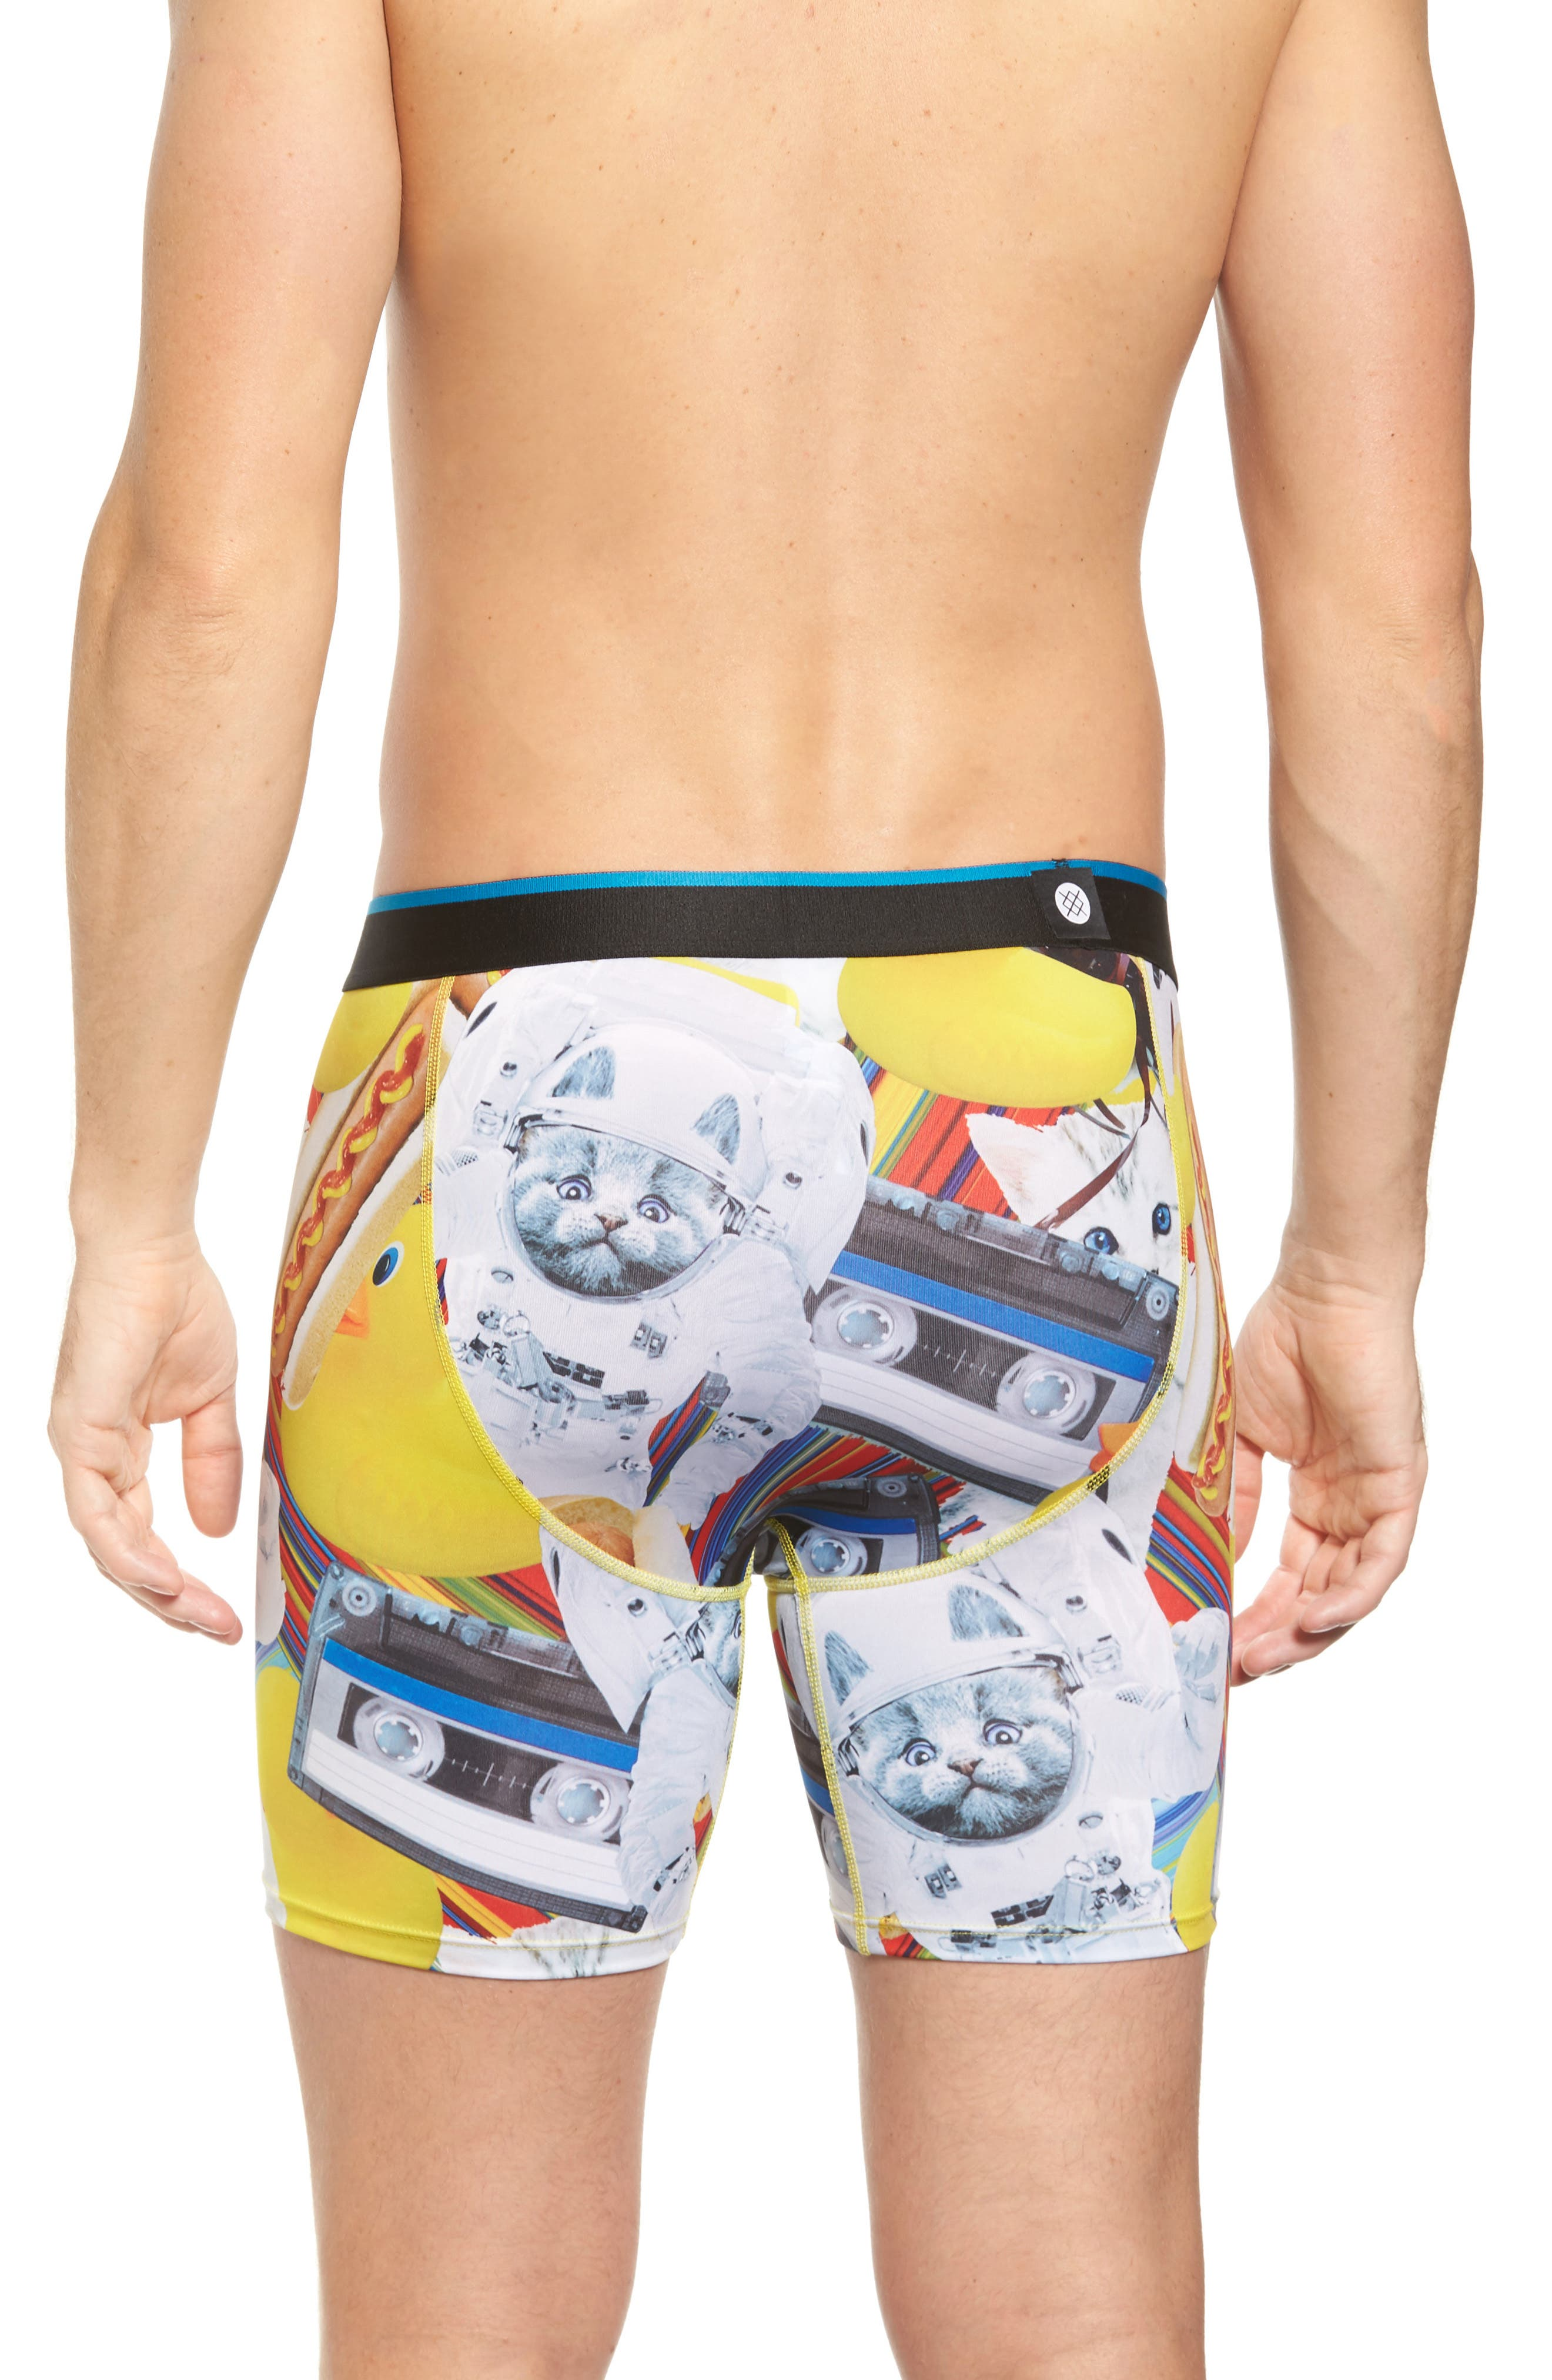 Castronaut Boxer Briefs,                             Alternate thumbnail 2, color,                             Yellow Multi